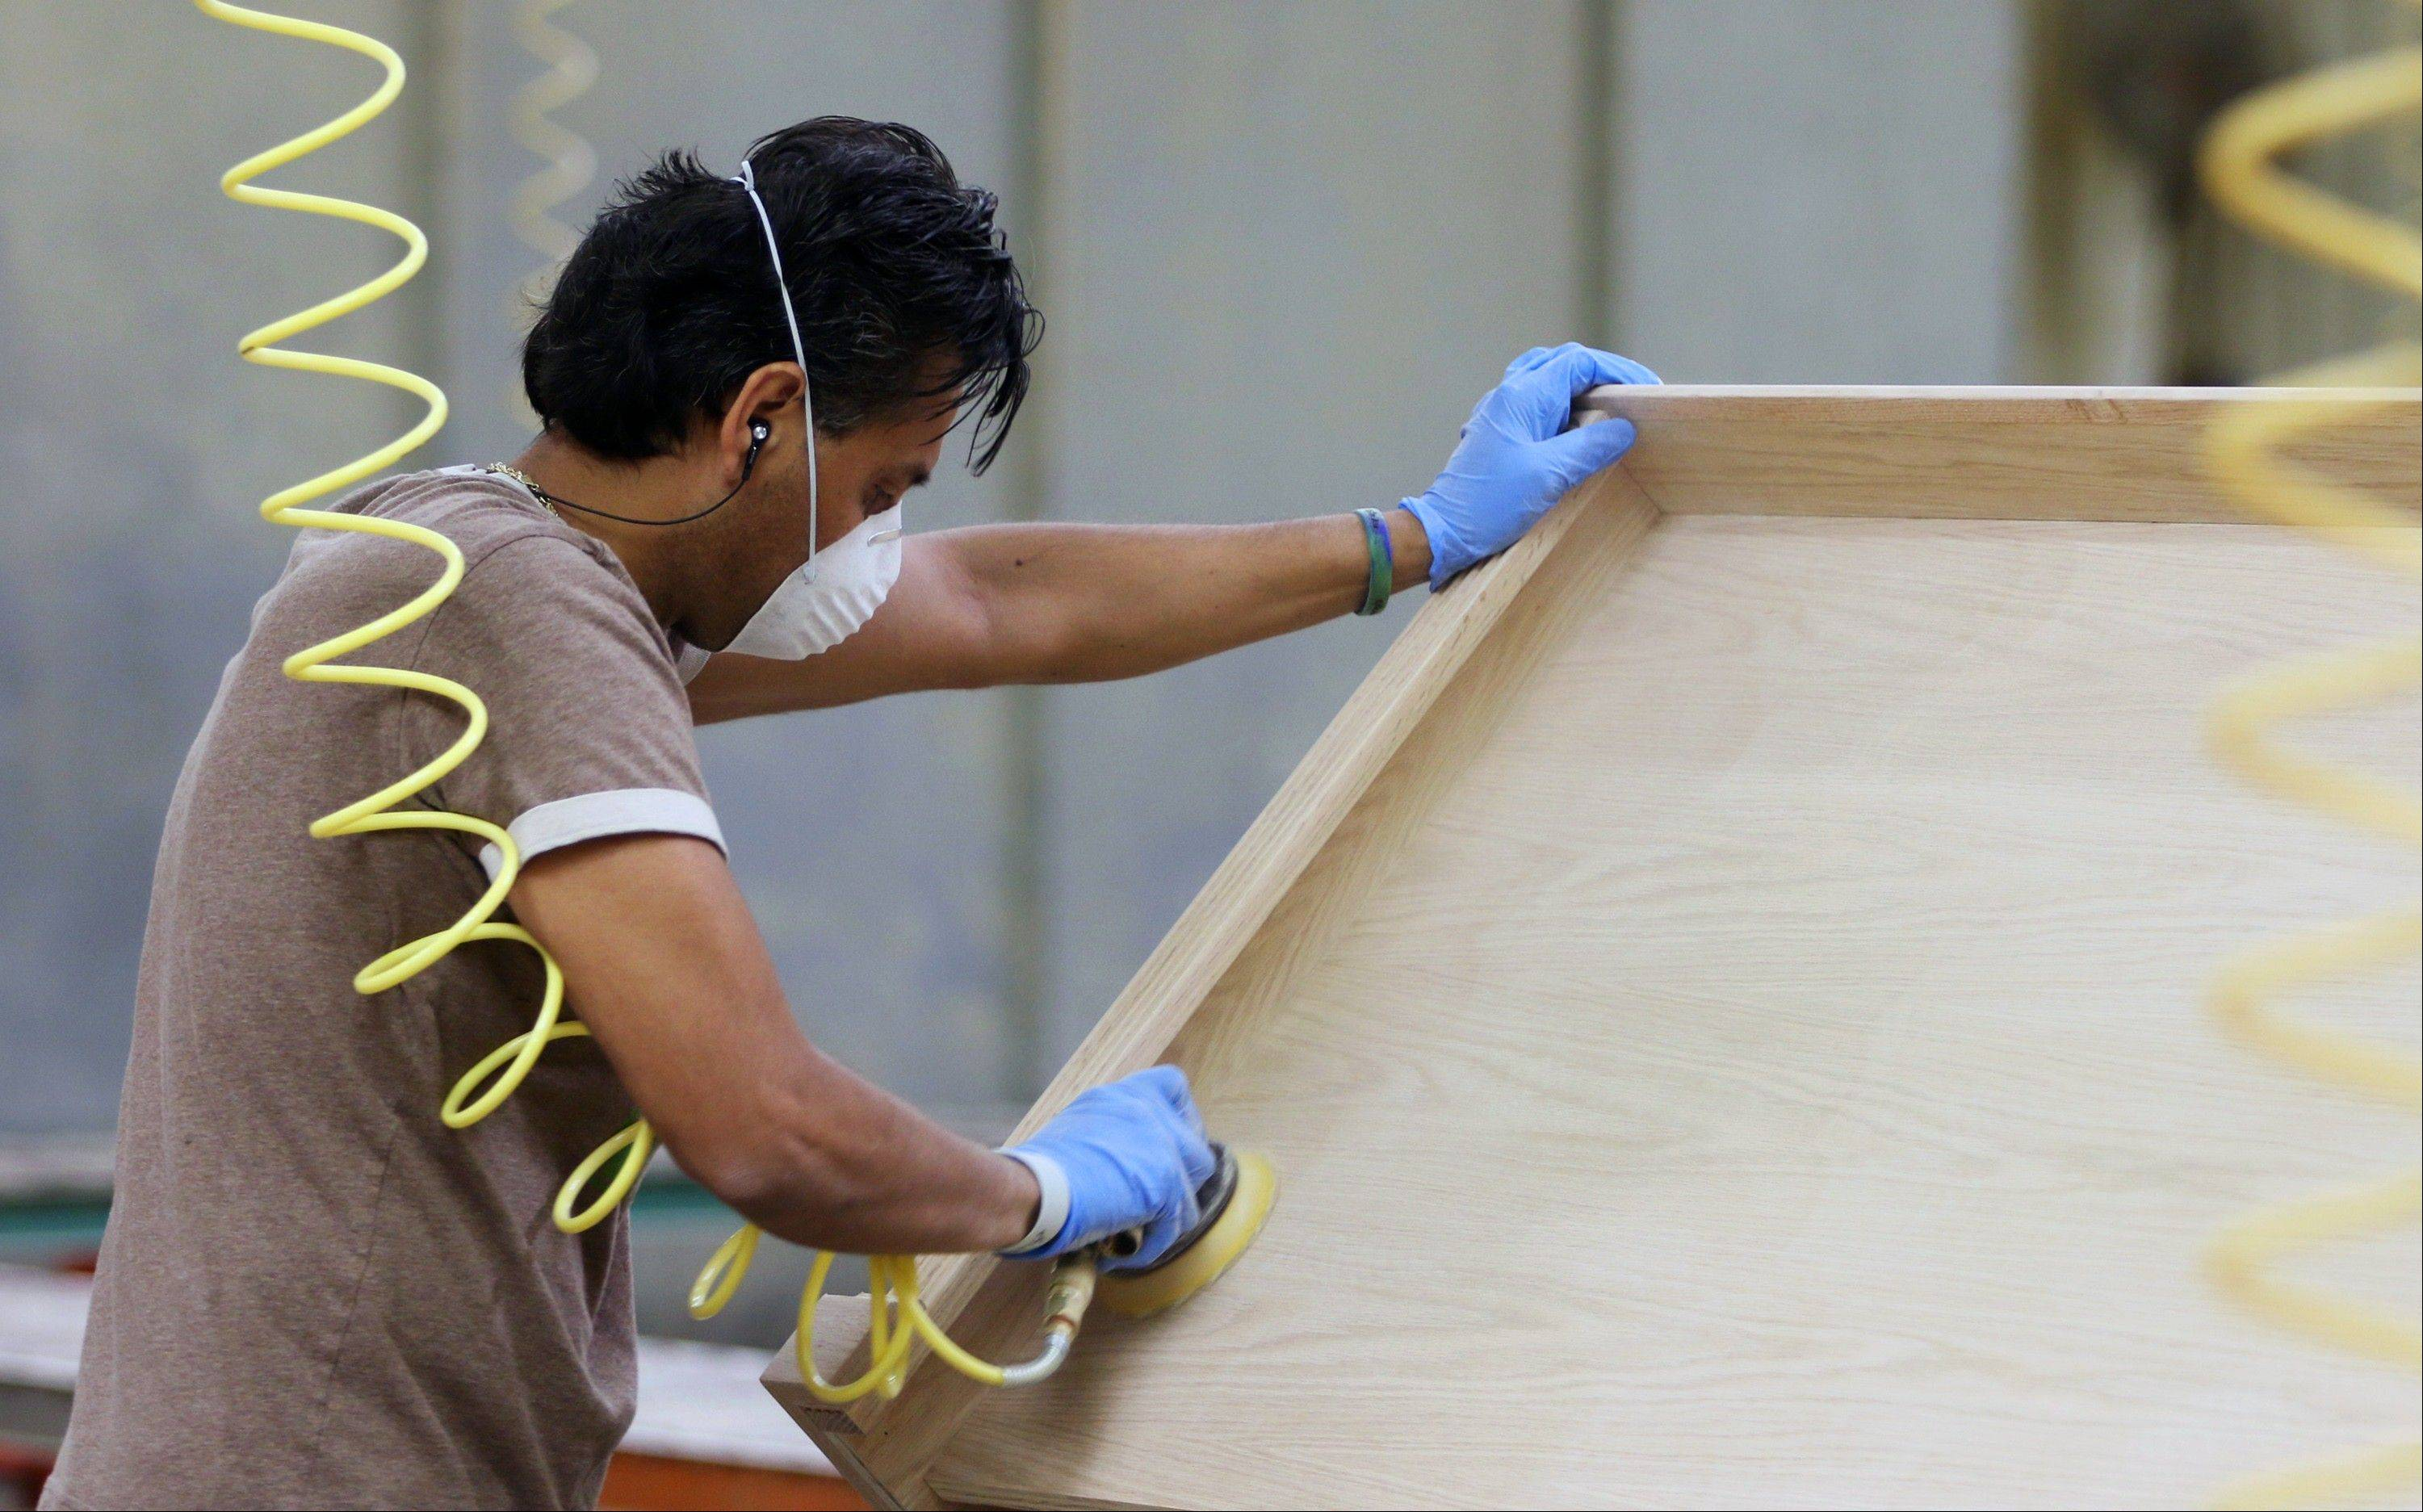 A worker sands a custom piece of furniture at the at Baker Road Furniture manufacturing facility in South Elgin. Companies placed slightly more orders in August for U.S. long-lasting manufactured goods, stepping up demand for cars, trucks and machinery. Even with the gain, business spending on factory goods may not be strong enough to accelerate economic growth in the July-September quarter.